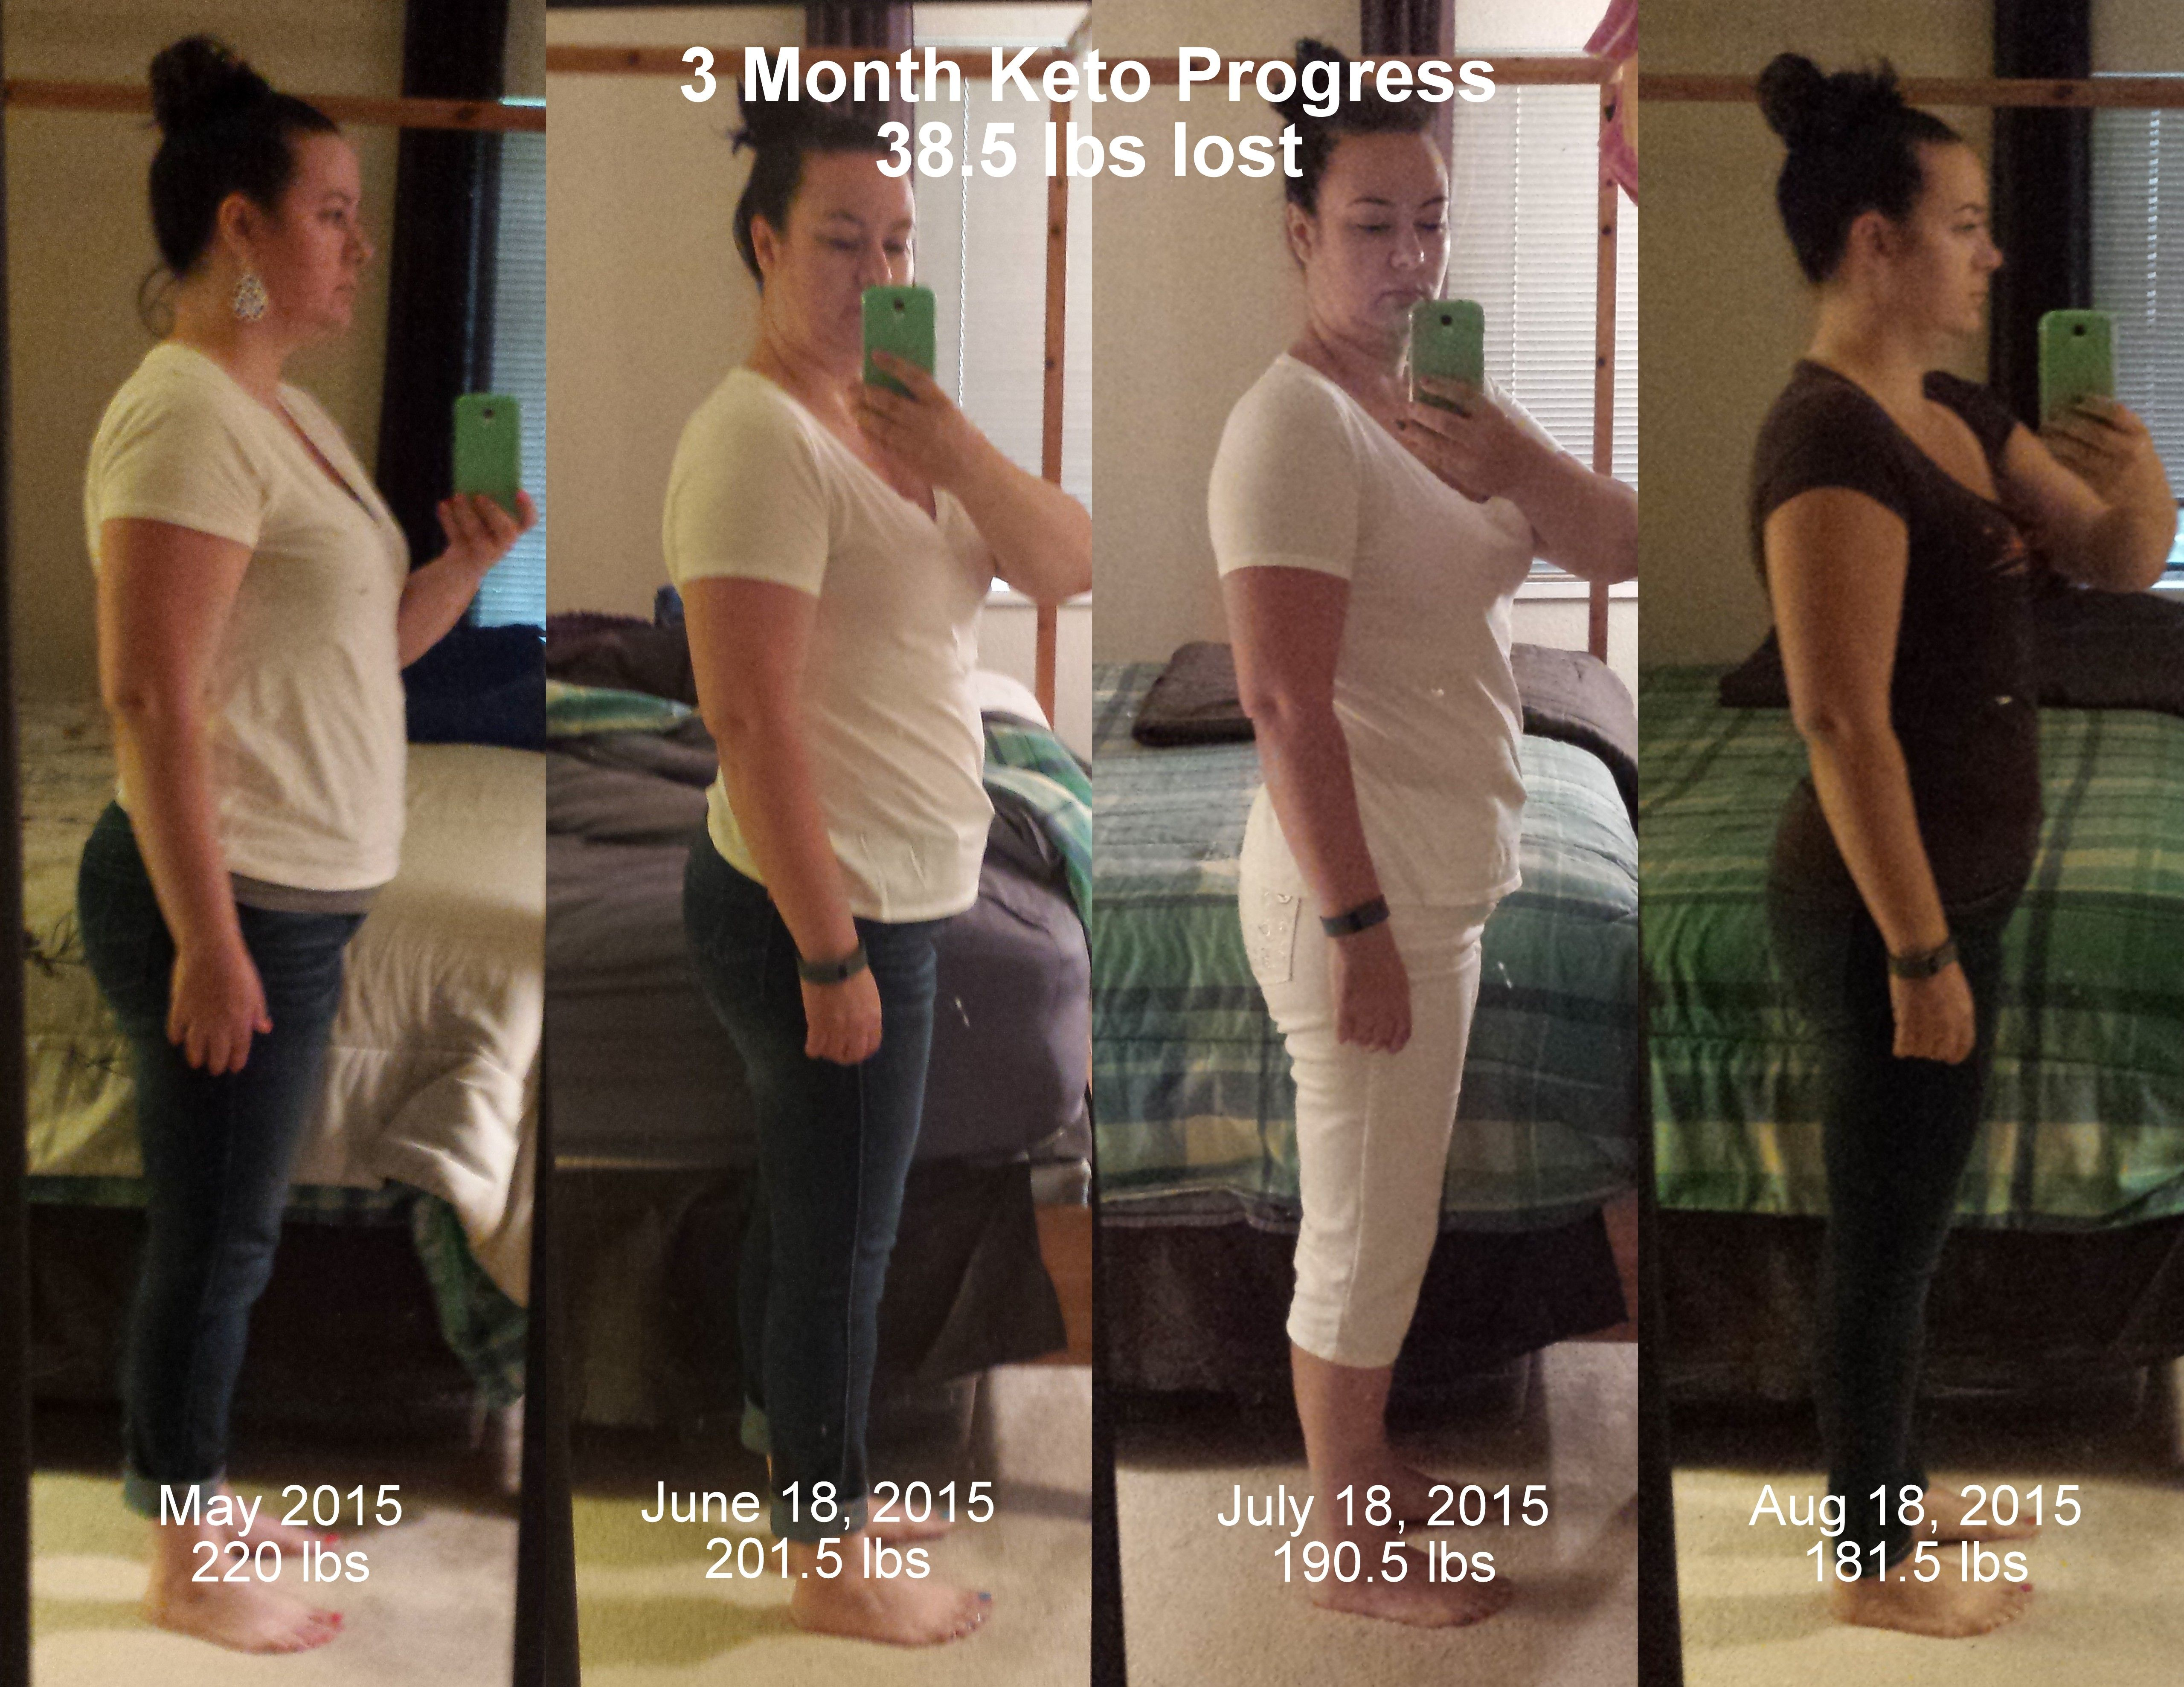 Ketogenic Diet Plan Results – See How I Lost 28lbs Eating Burgers and Bacon